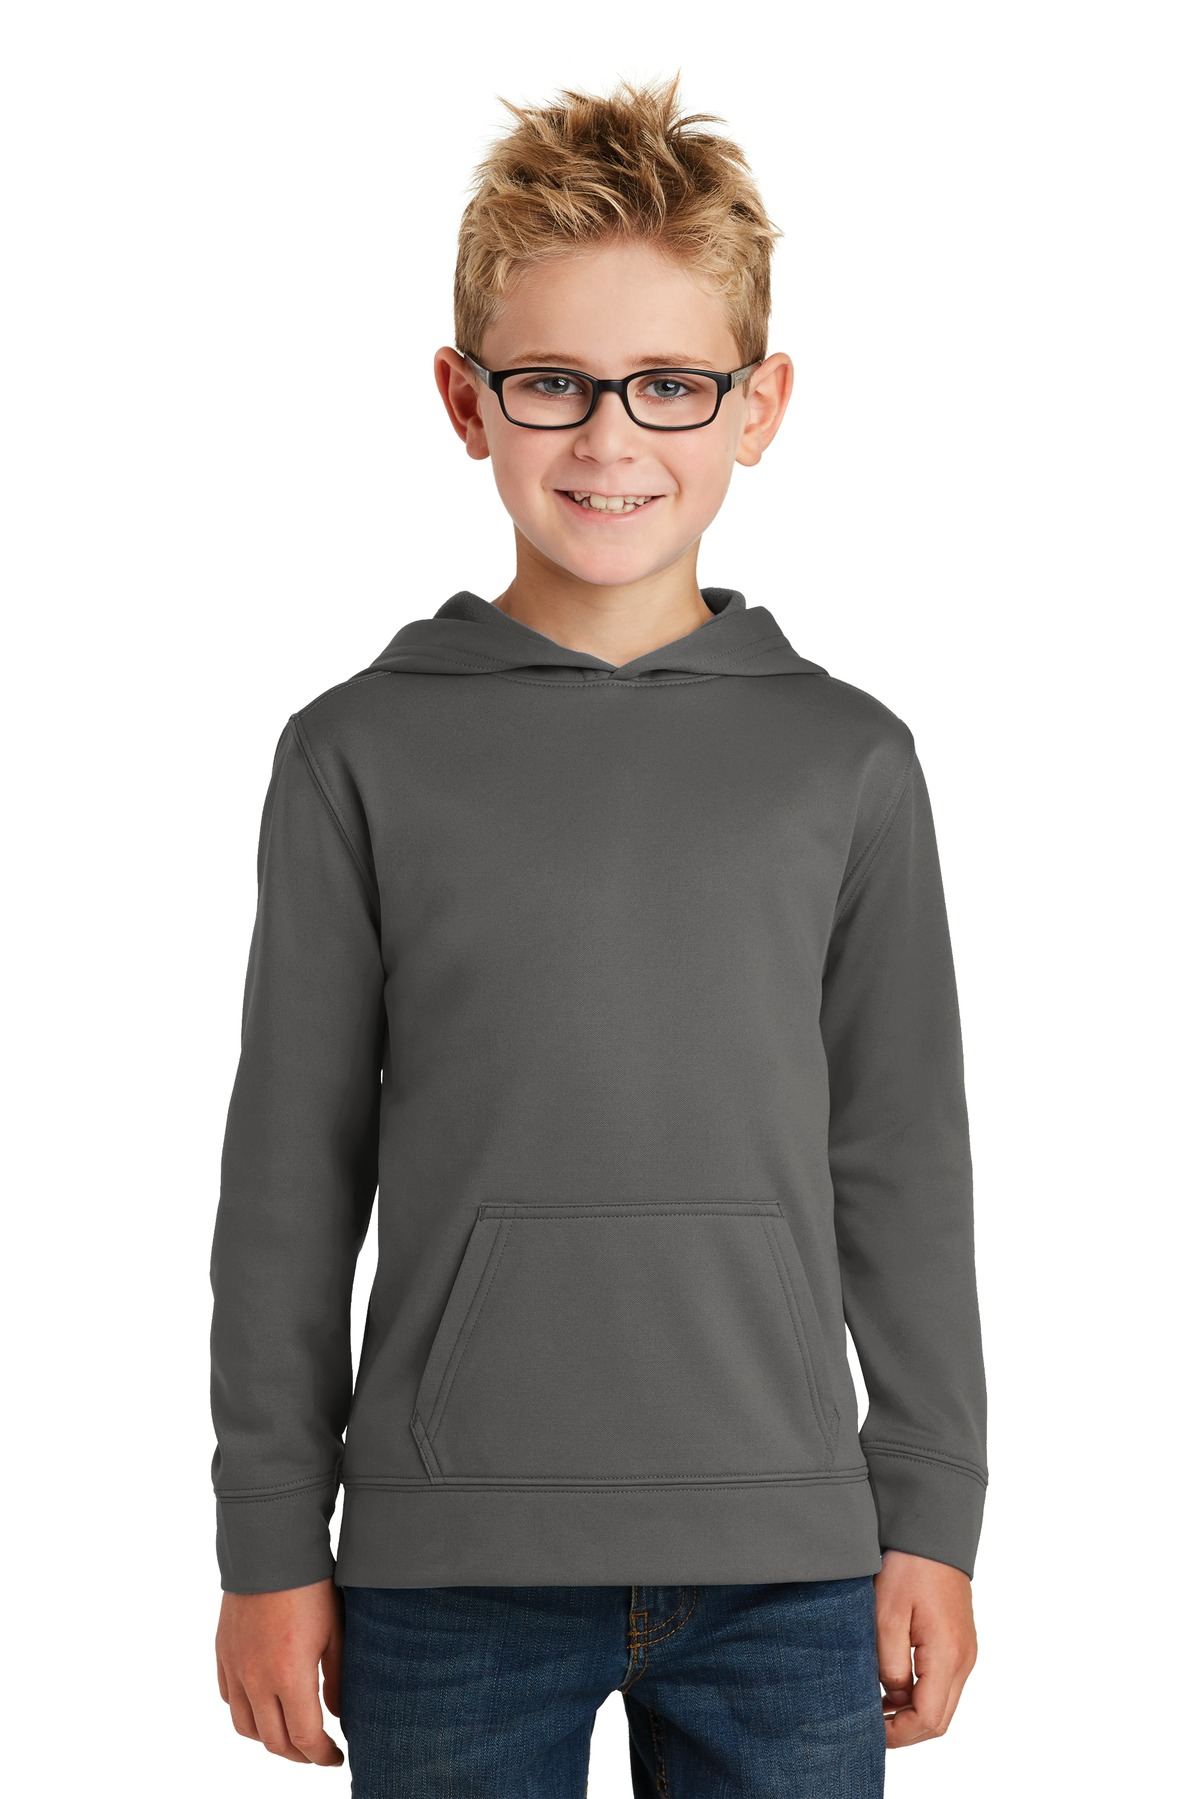 Orange Port /& Company Youth Front Pouch Pocket Pullover Hooded Sweatshirt